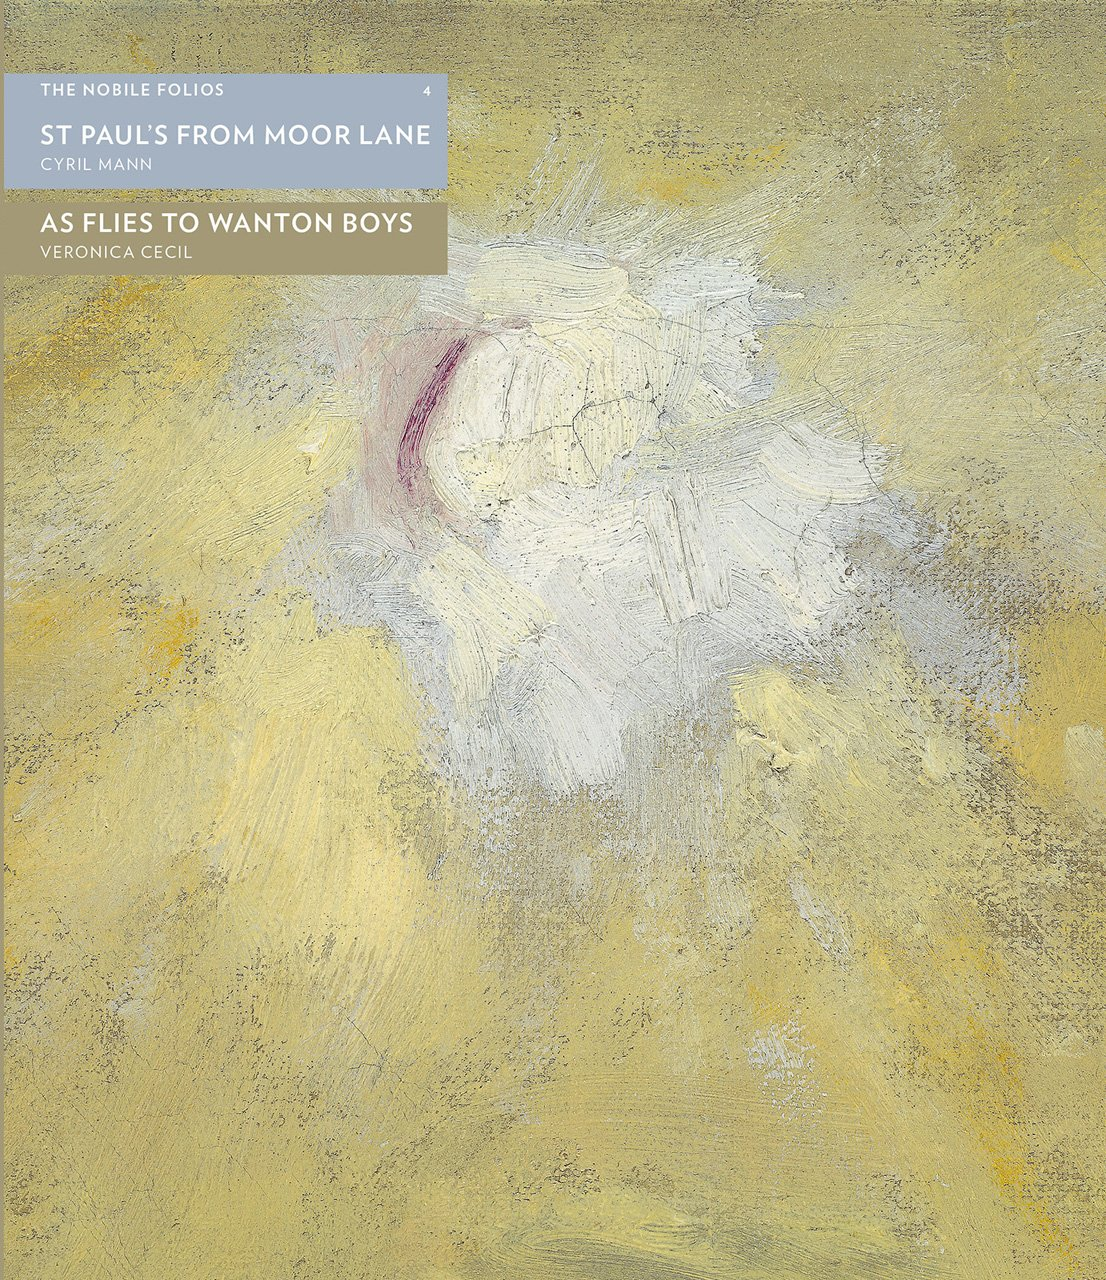 Download St Paul's from Moor Lane / As Flies to Wanton Boys / Cyril Mann's Post-War Cityscapes (Nobile Folios) ebook